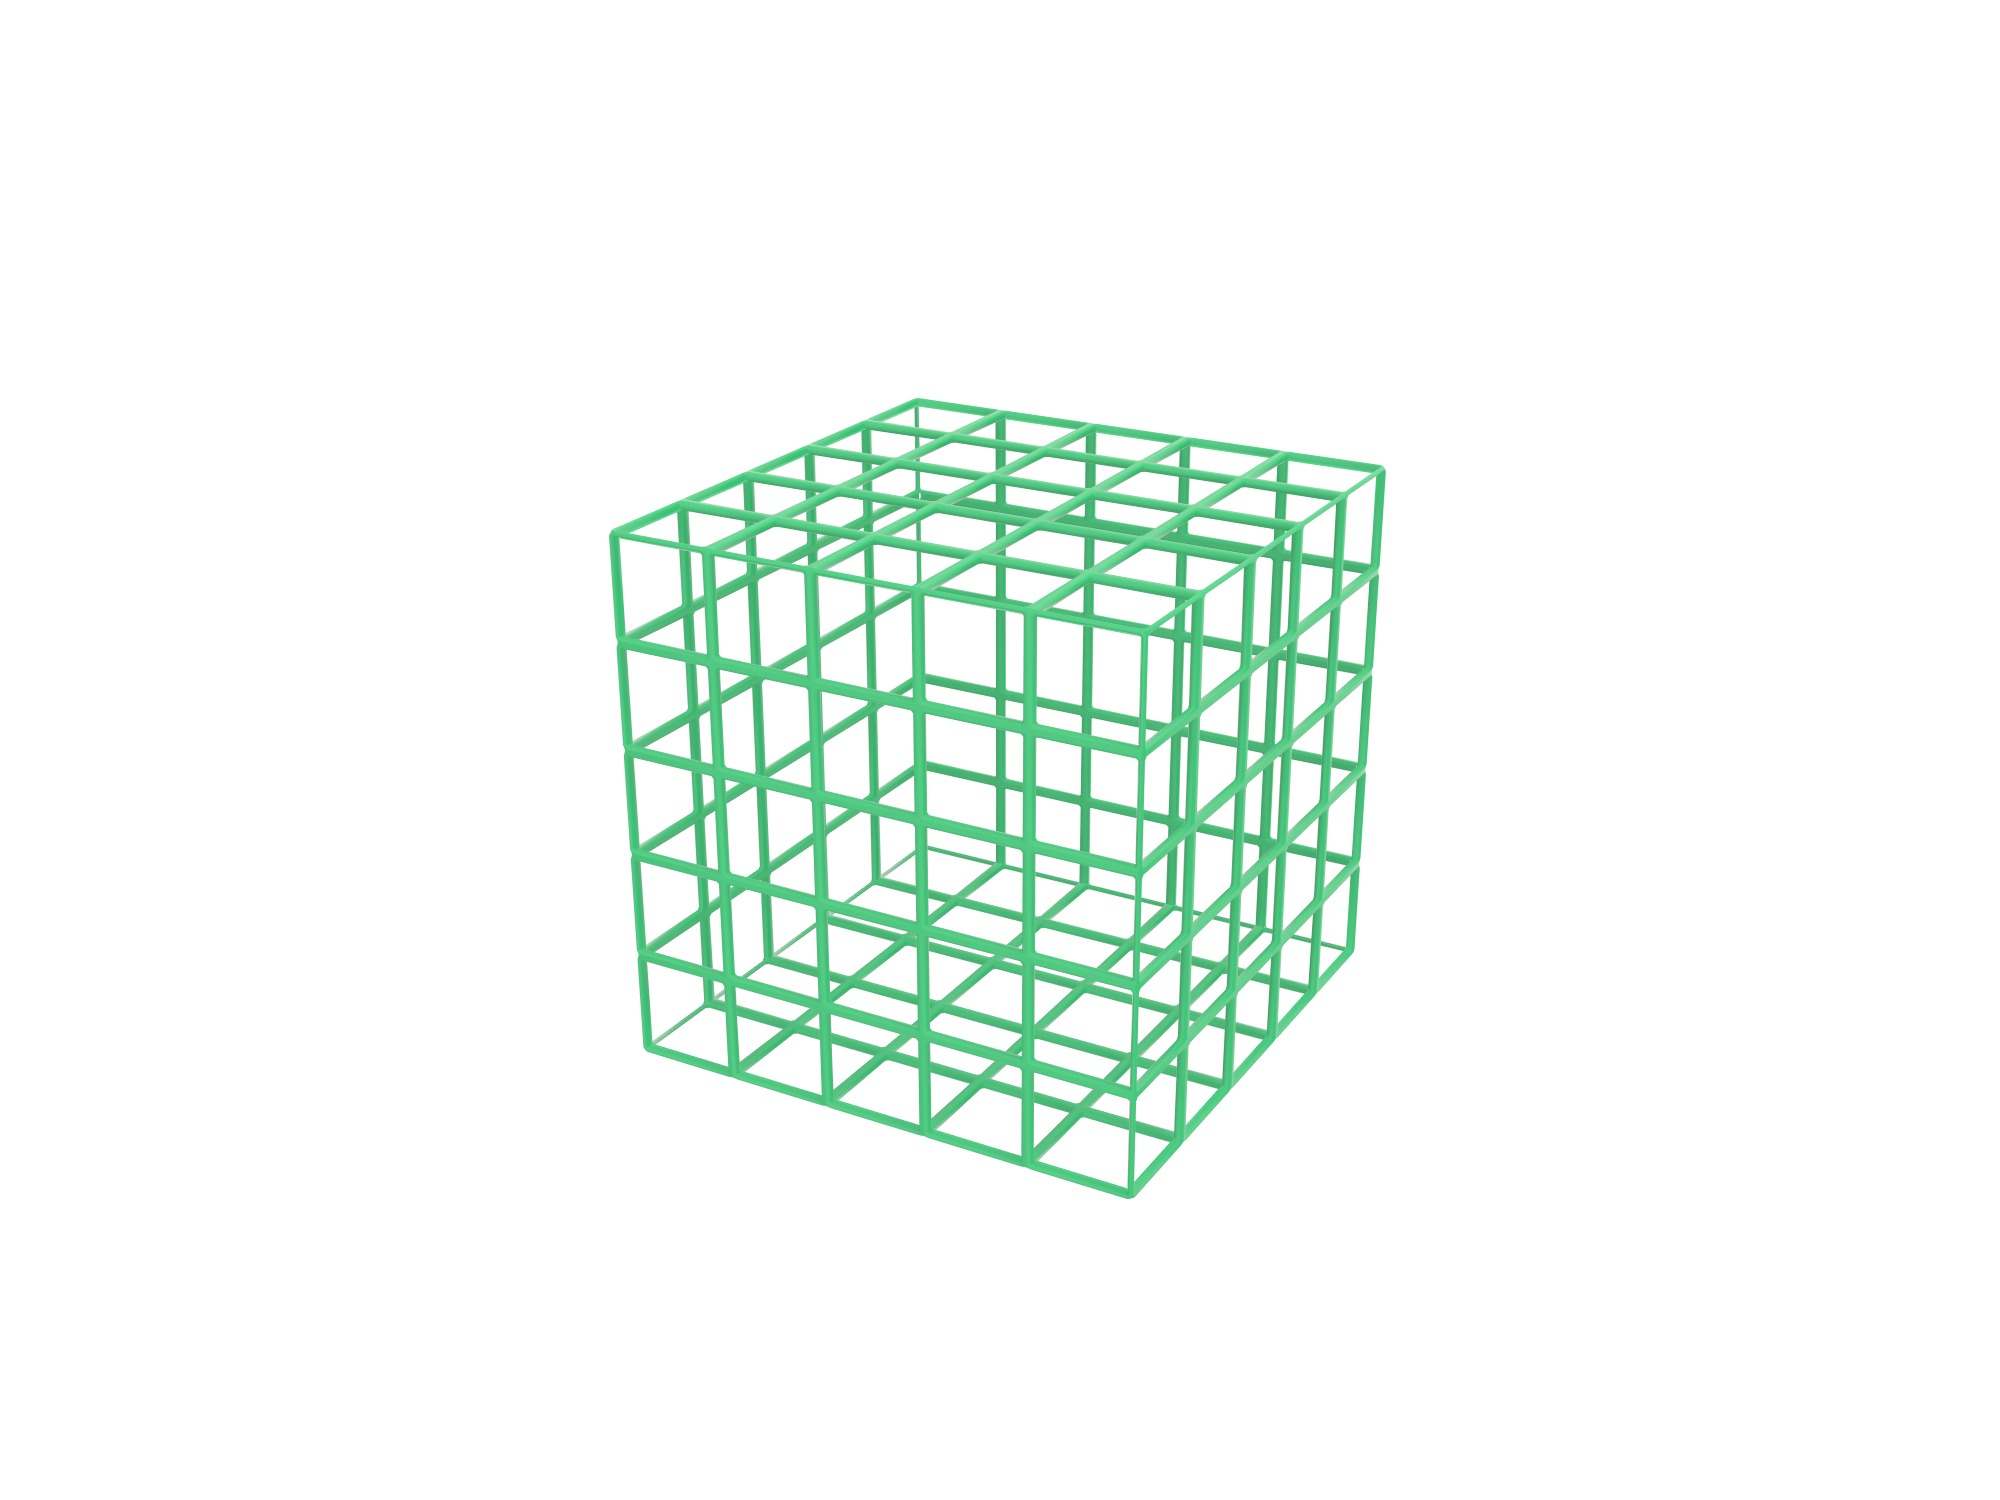 Box wireframe - 3D design by Vectary assets May 27, 2018